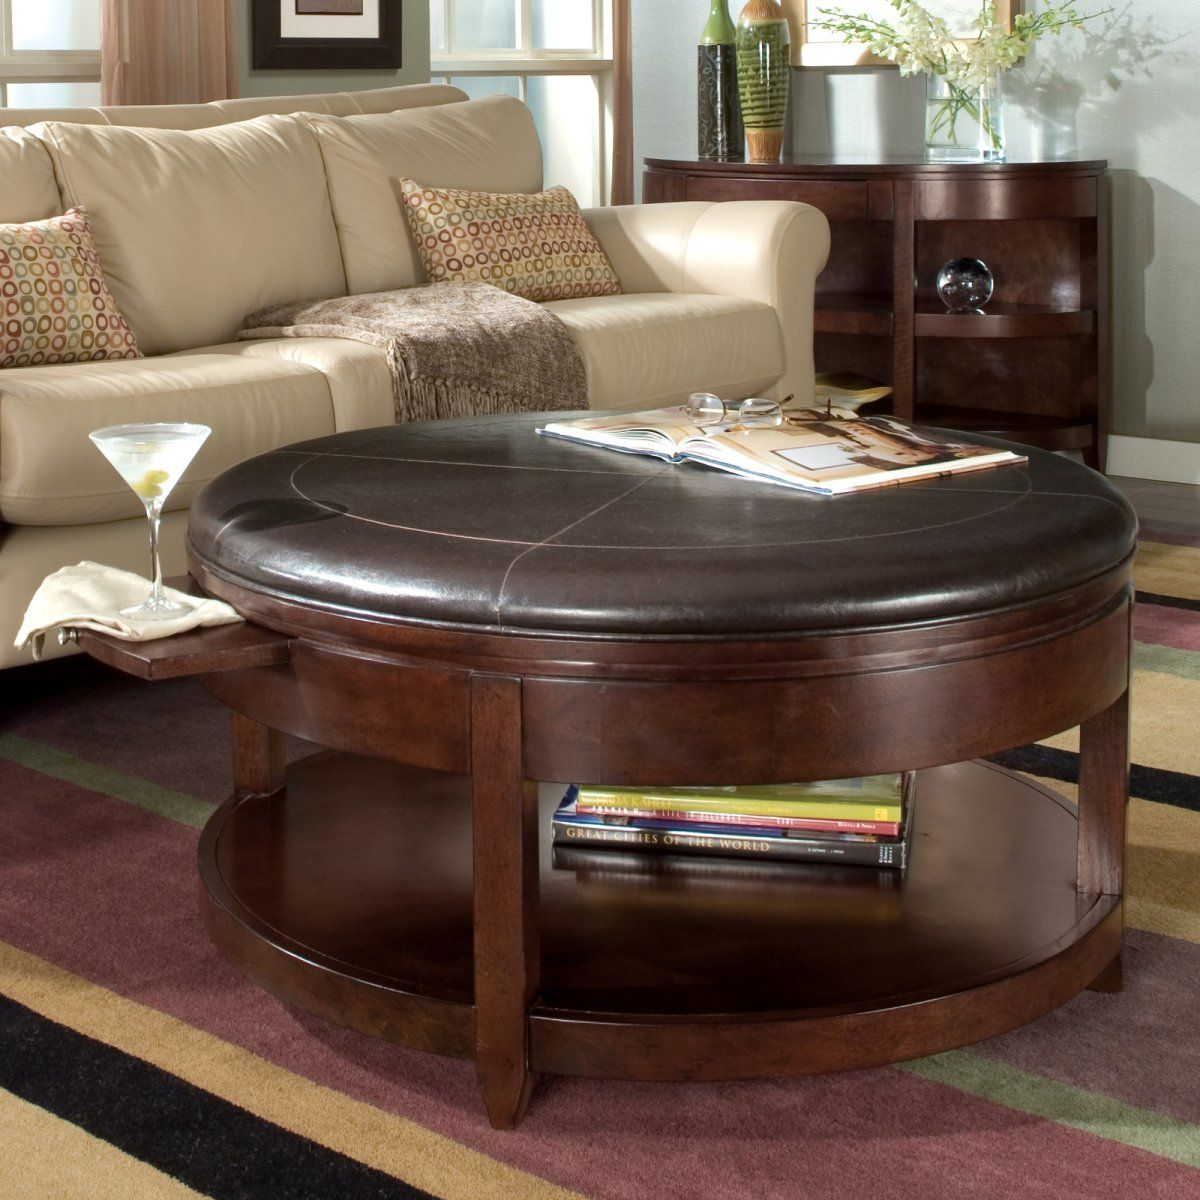 420 19 tall magnussen t1096 45 newark wood round coffee table 420 19 tall magnussen t1096 45 newark wood round coffee table geotapseo Images